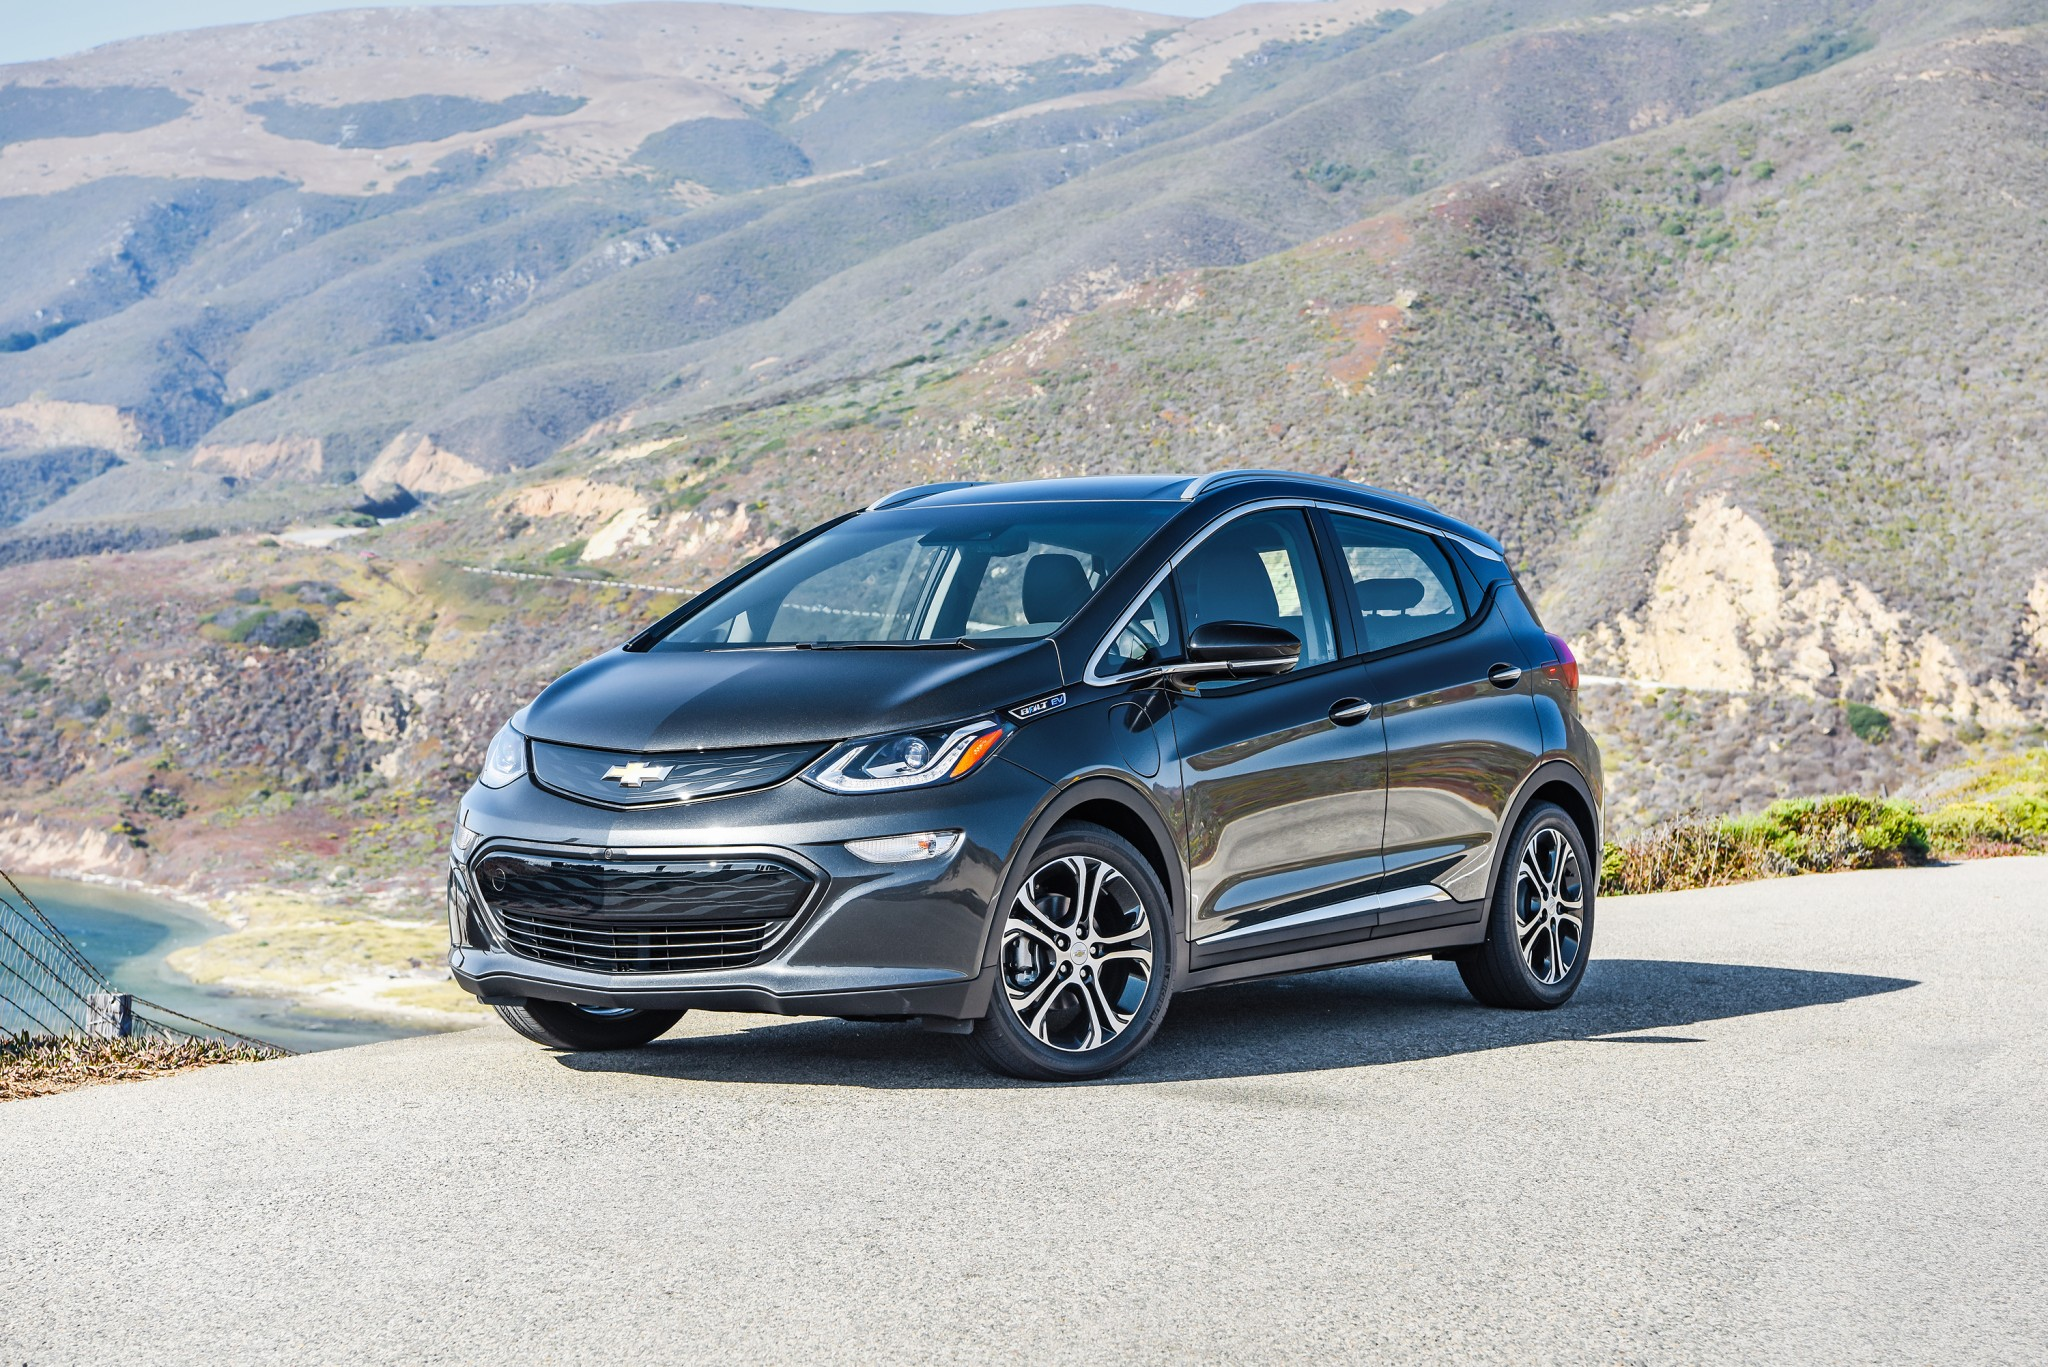 2017 chevrolet bolt review game changer for electric cars